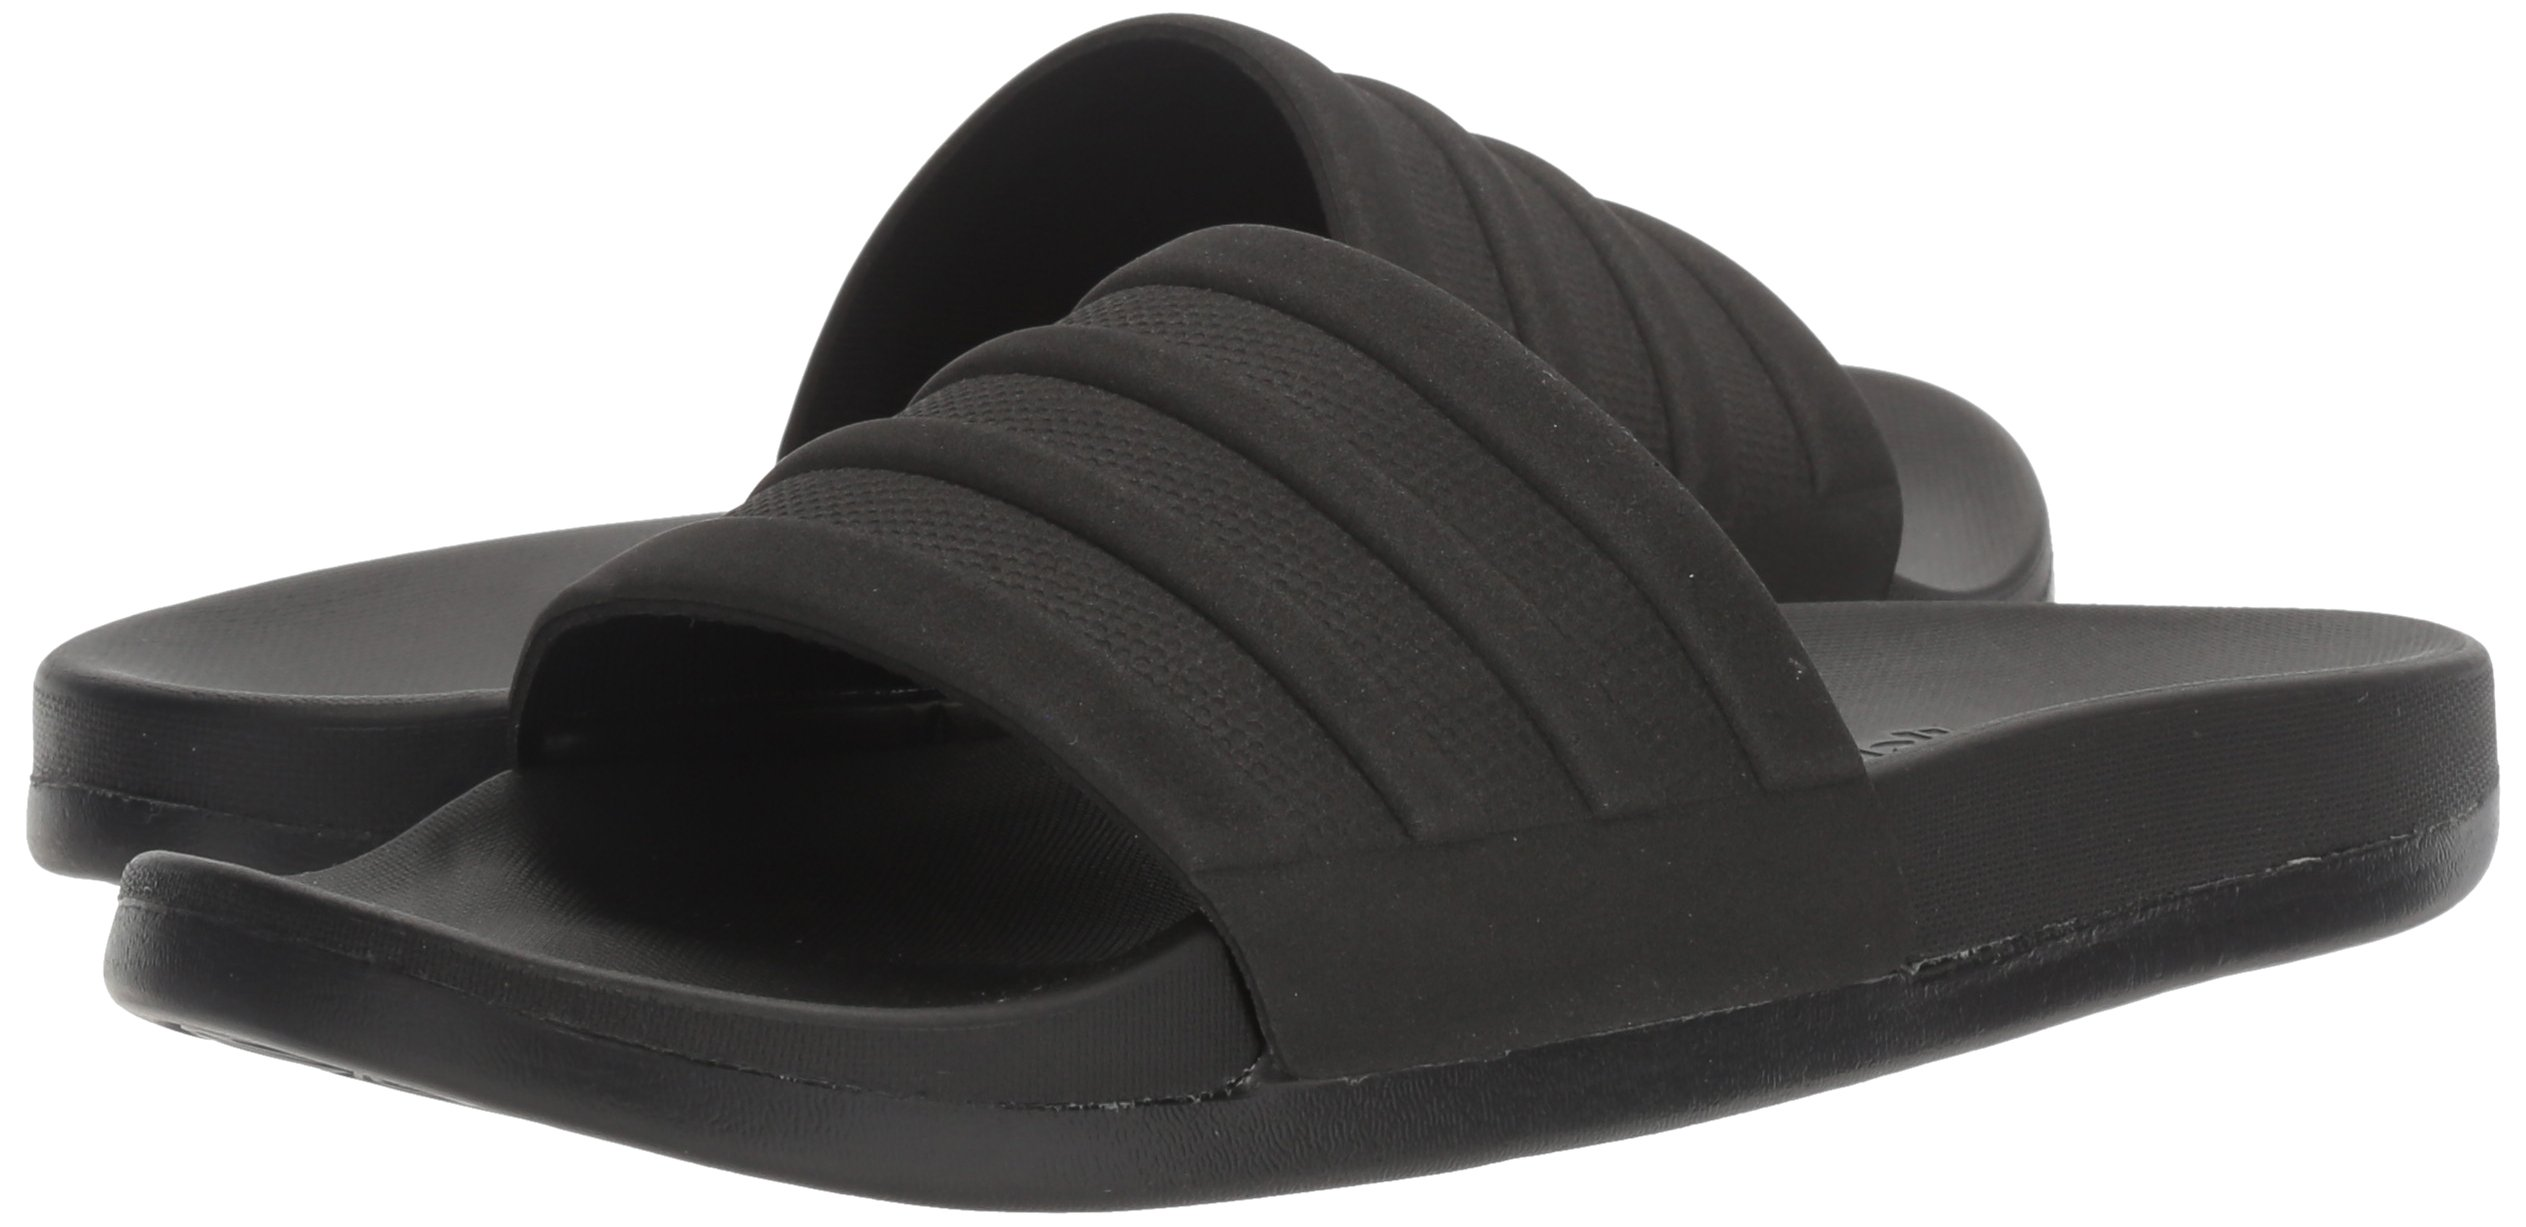 new style ae806 60095 adidas Mens Adilette Comfort Slide Sandal Black, (13 M US) - S82137-001-13  M US  Sandals  Clothing, Shoes  Jewelry - tibs